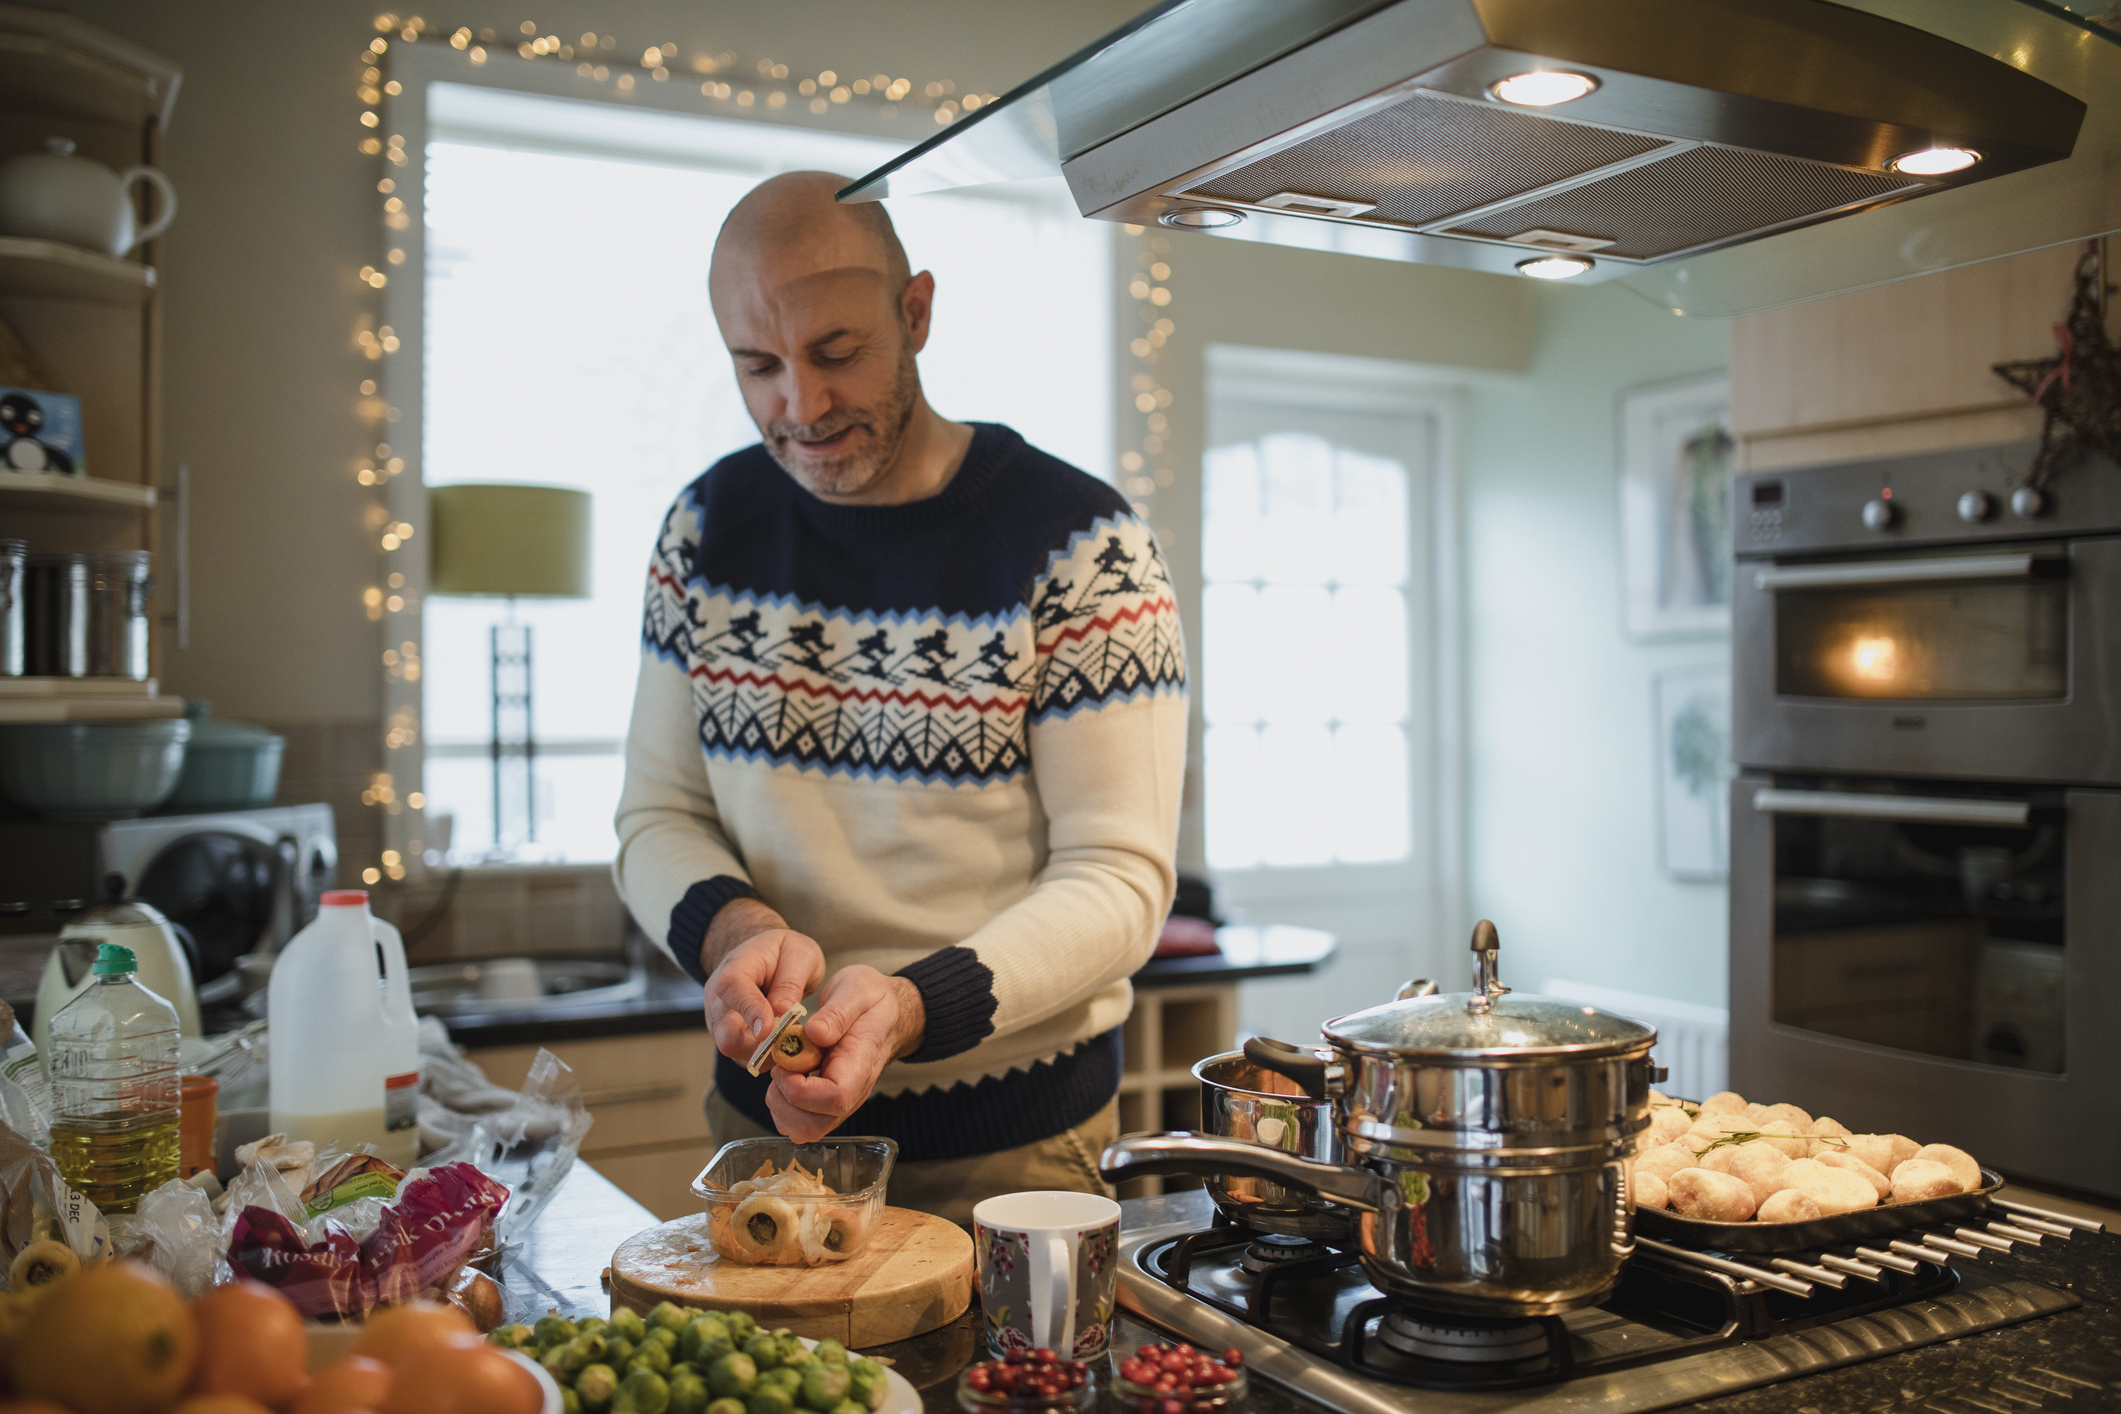 5 cardiologist-approved tips for heart-healthy holidays